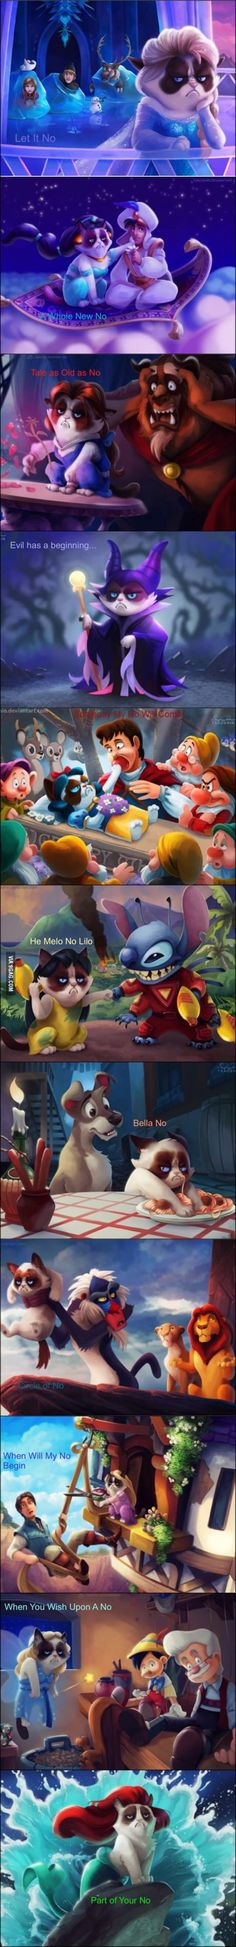 Grumpy Cat-Disney mashup- The Pinnochio one though. OMG.